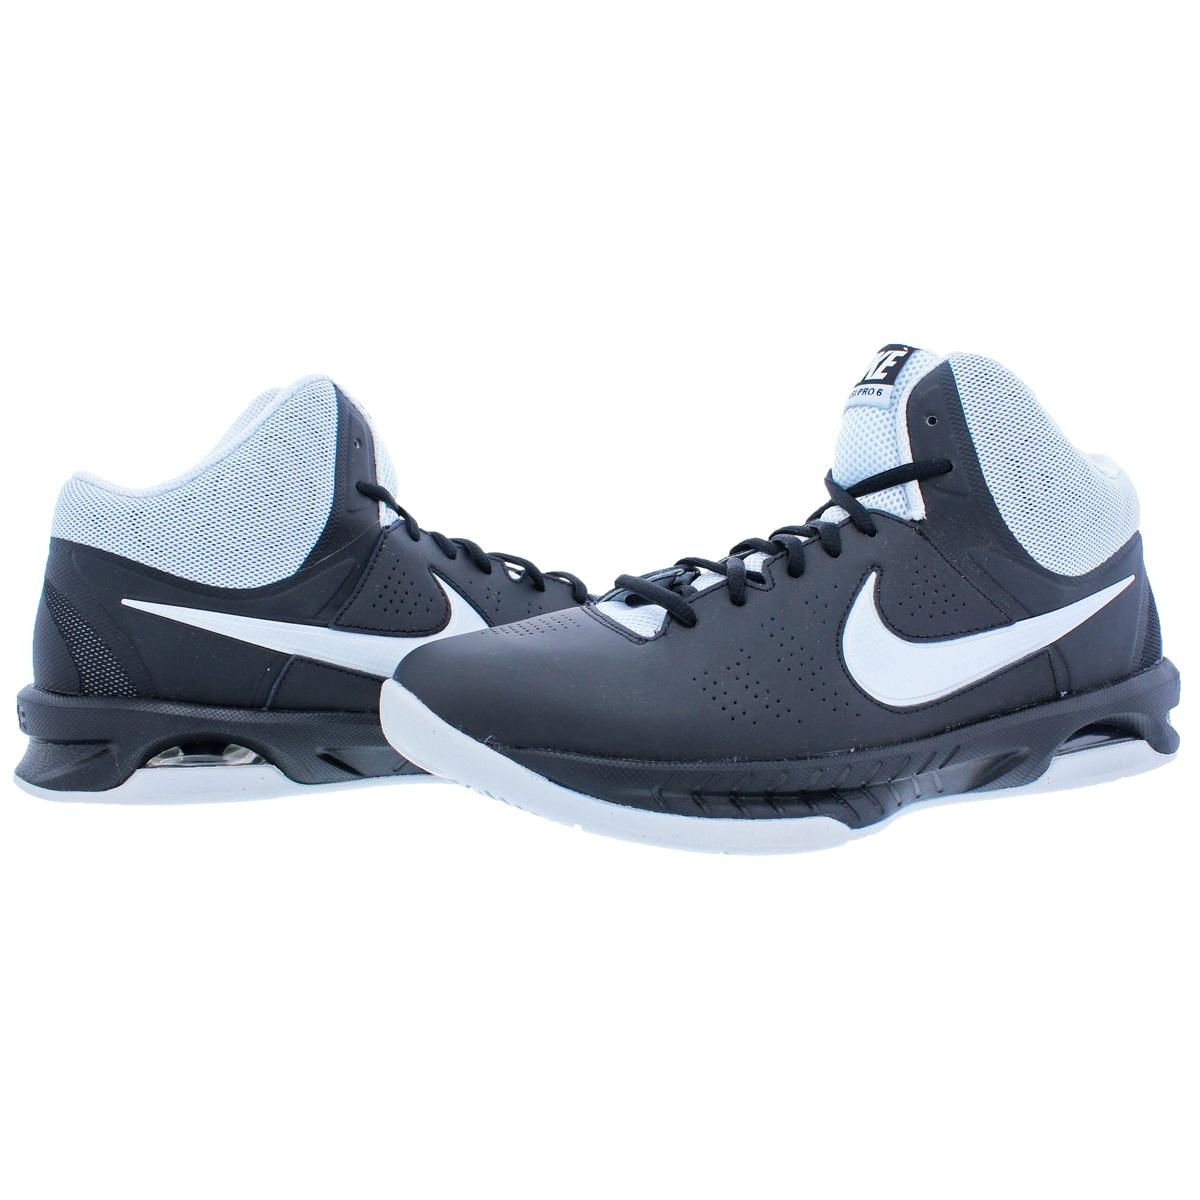 f9948e4f0db Details about Nike Womens Air Visi Pro VI Black Basketball Shoes 11.5 Medium  (B